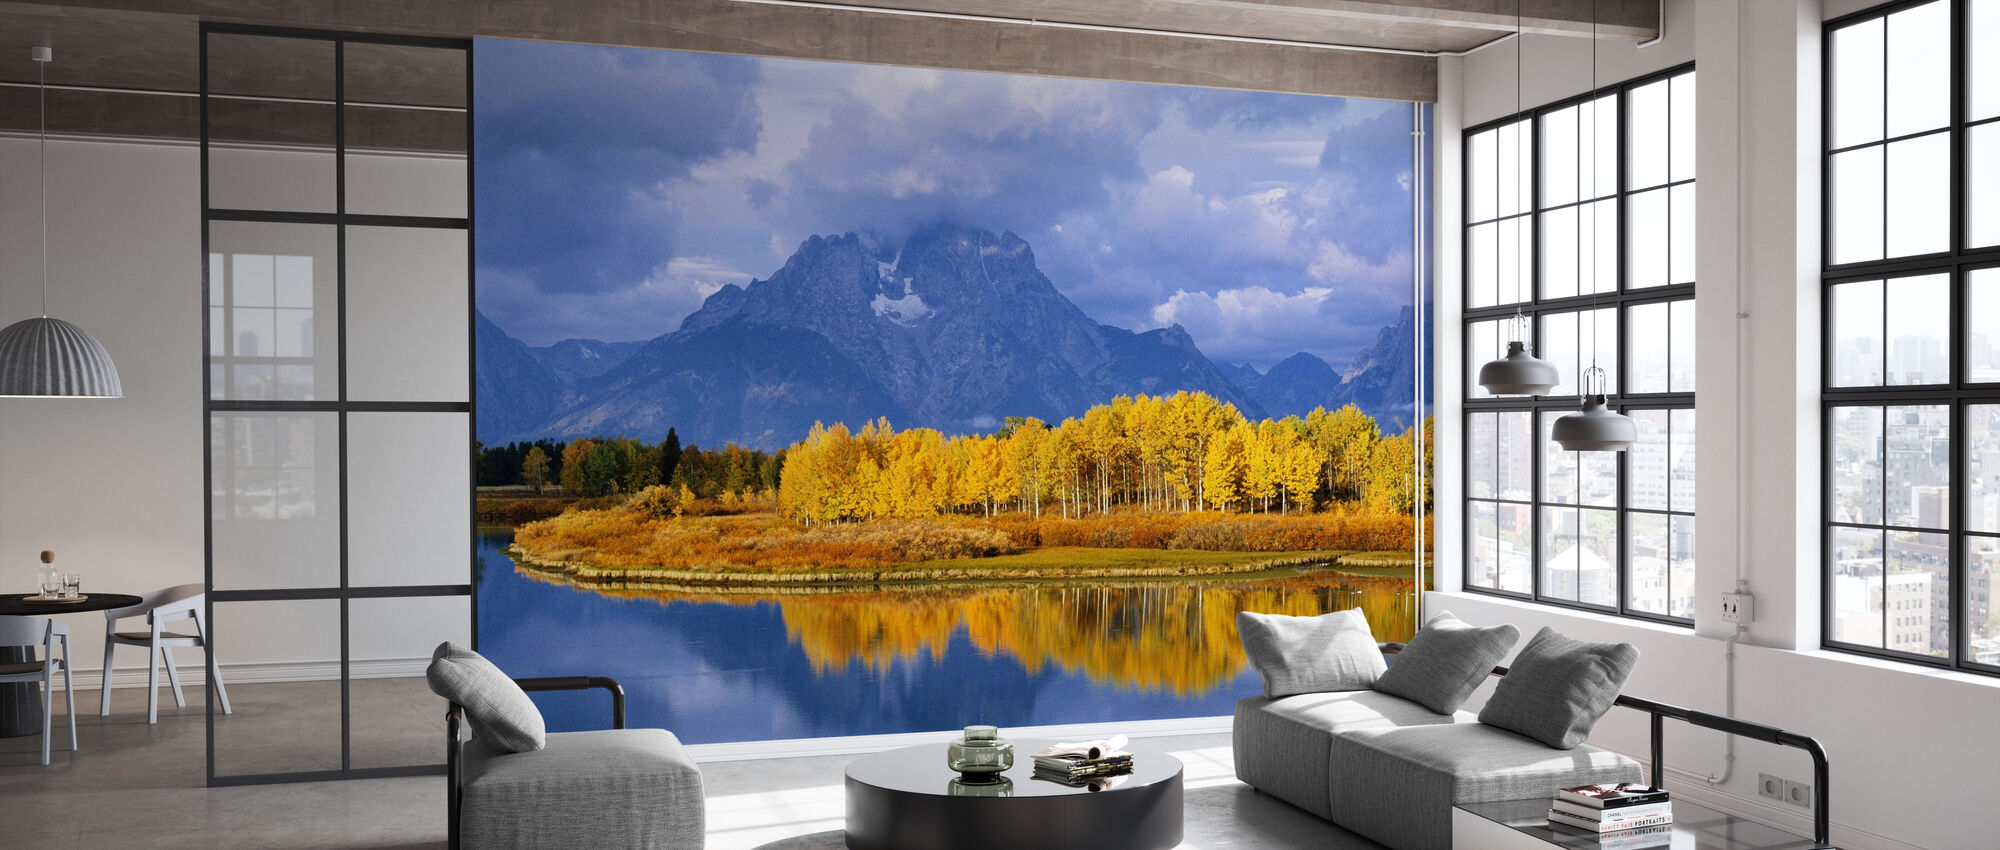 Grand Teton - Wallpaper - Office